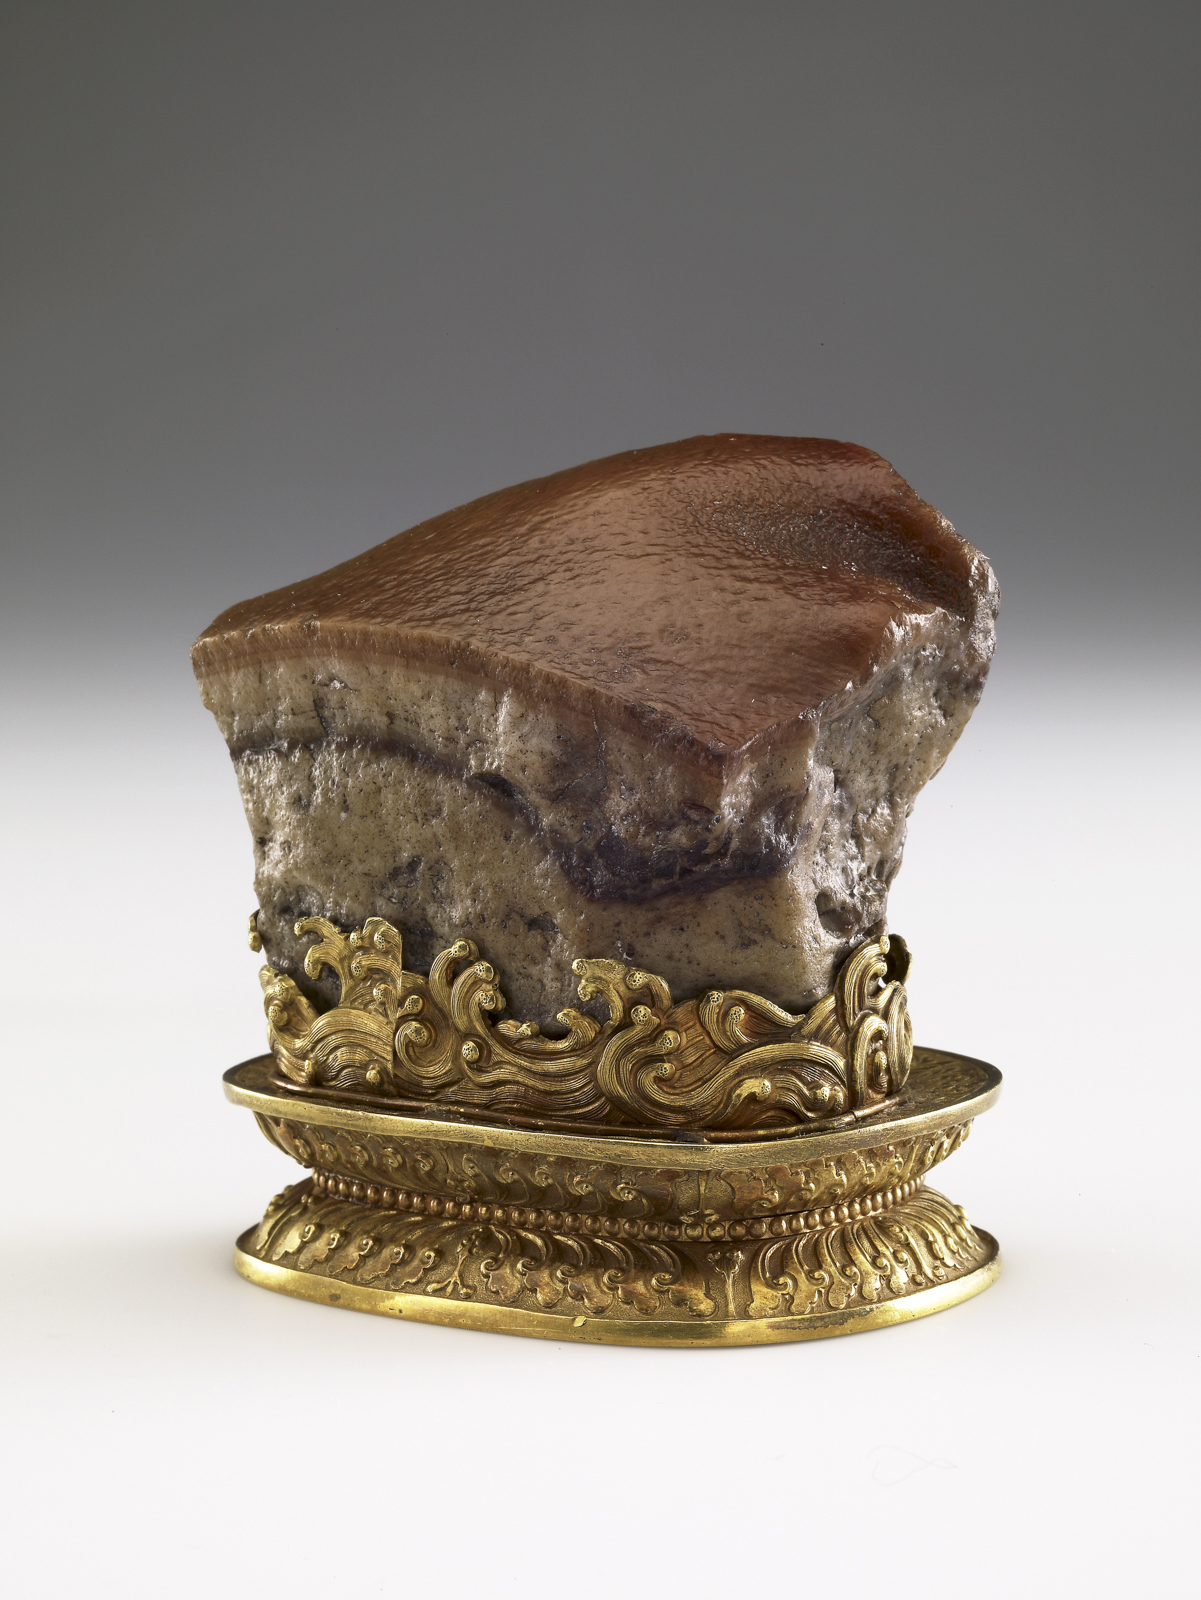 Meat-shaped stone, approx. 1800–1900. China, Qing dynasty (1644–1911). Stone: jasper; stand: gold. National Palace Museum, Taipei, Guza 000178 Lü-413.